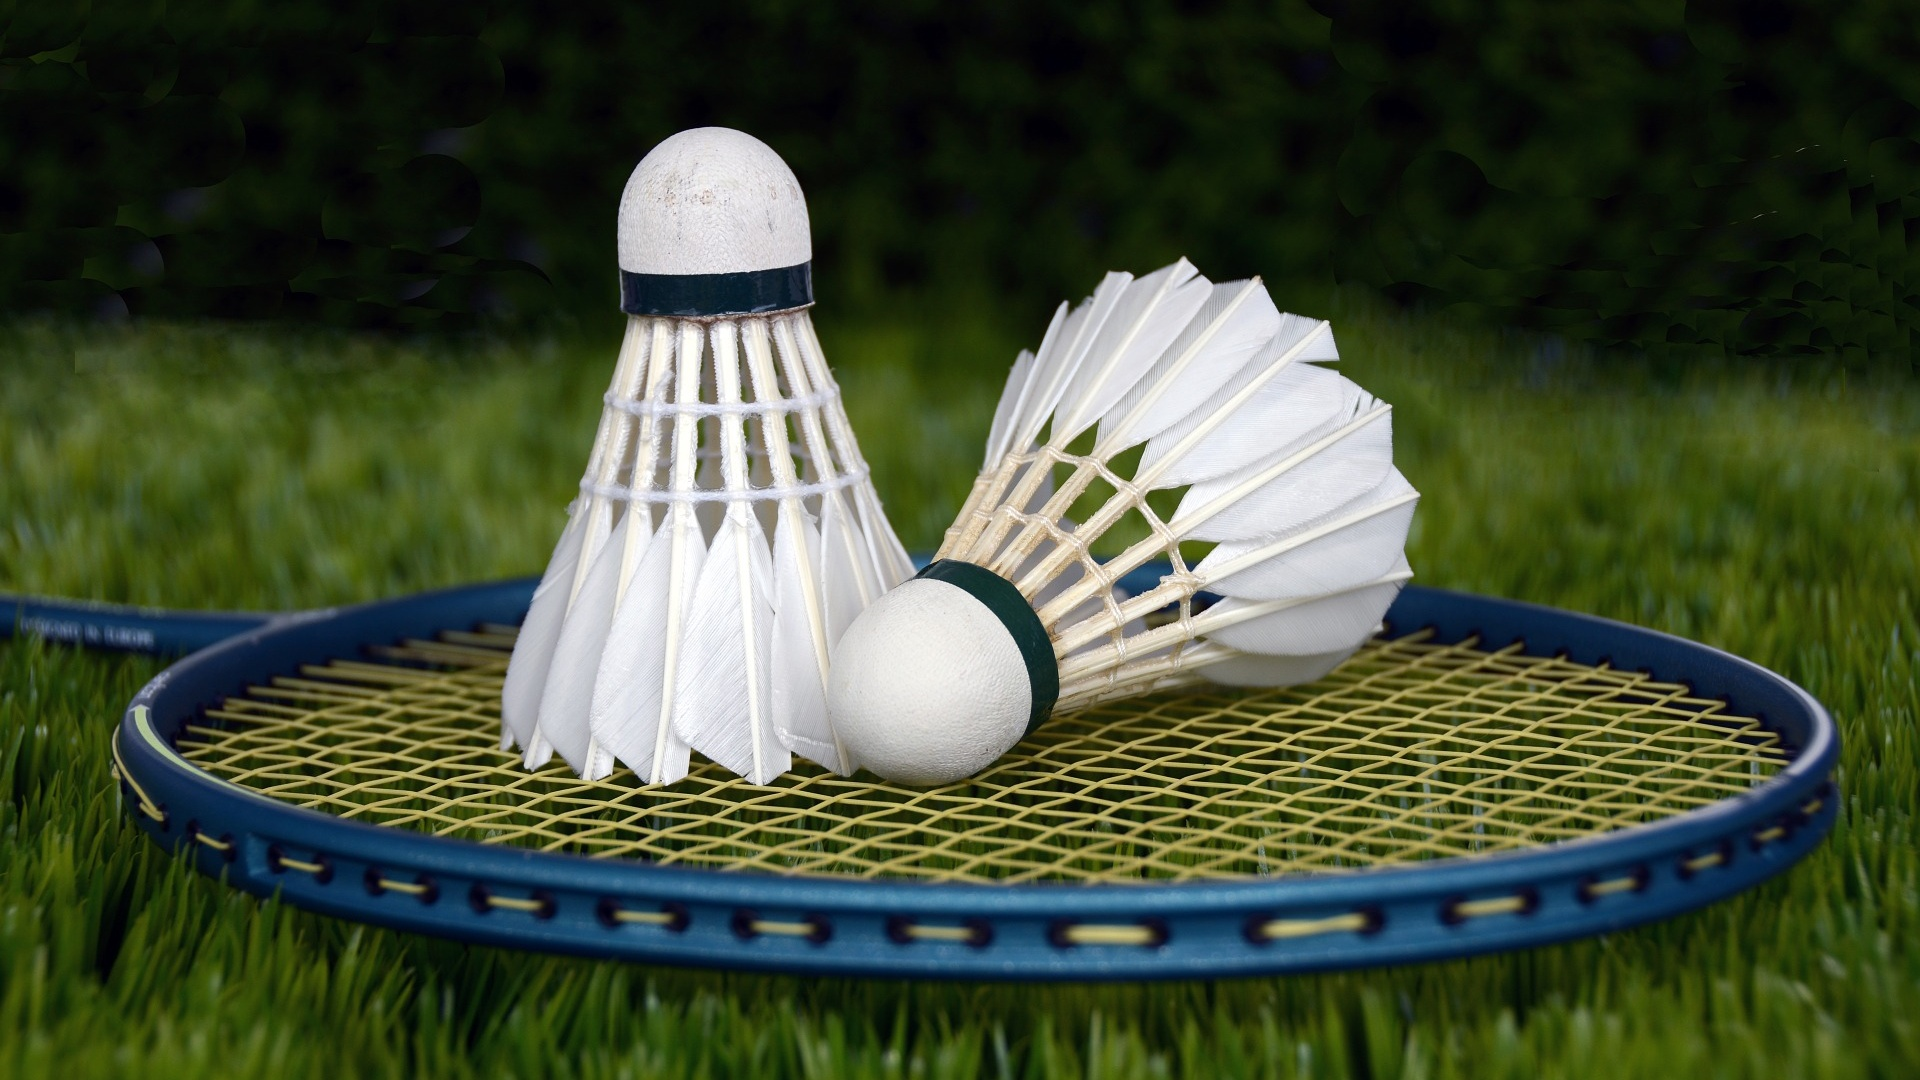 badminton-1428047_1920-cropped